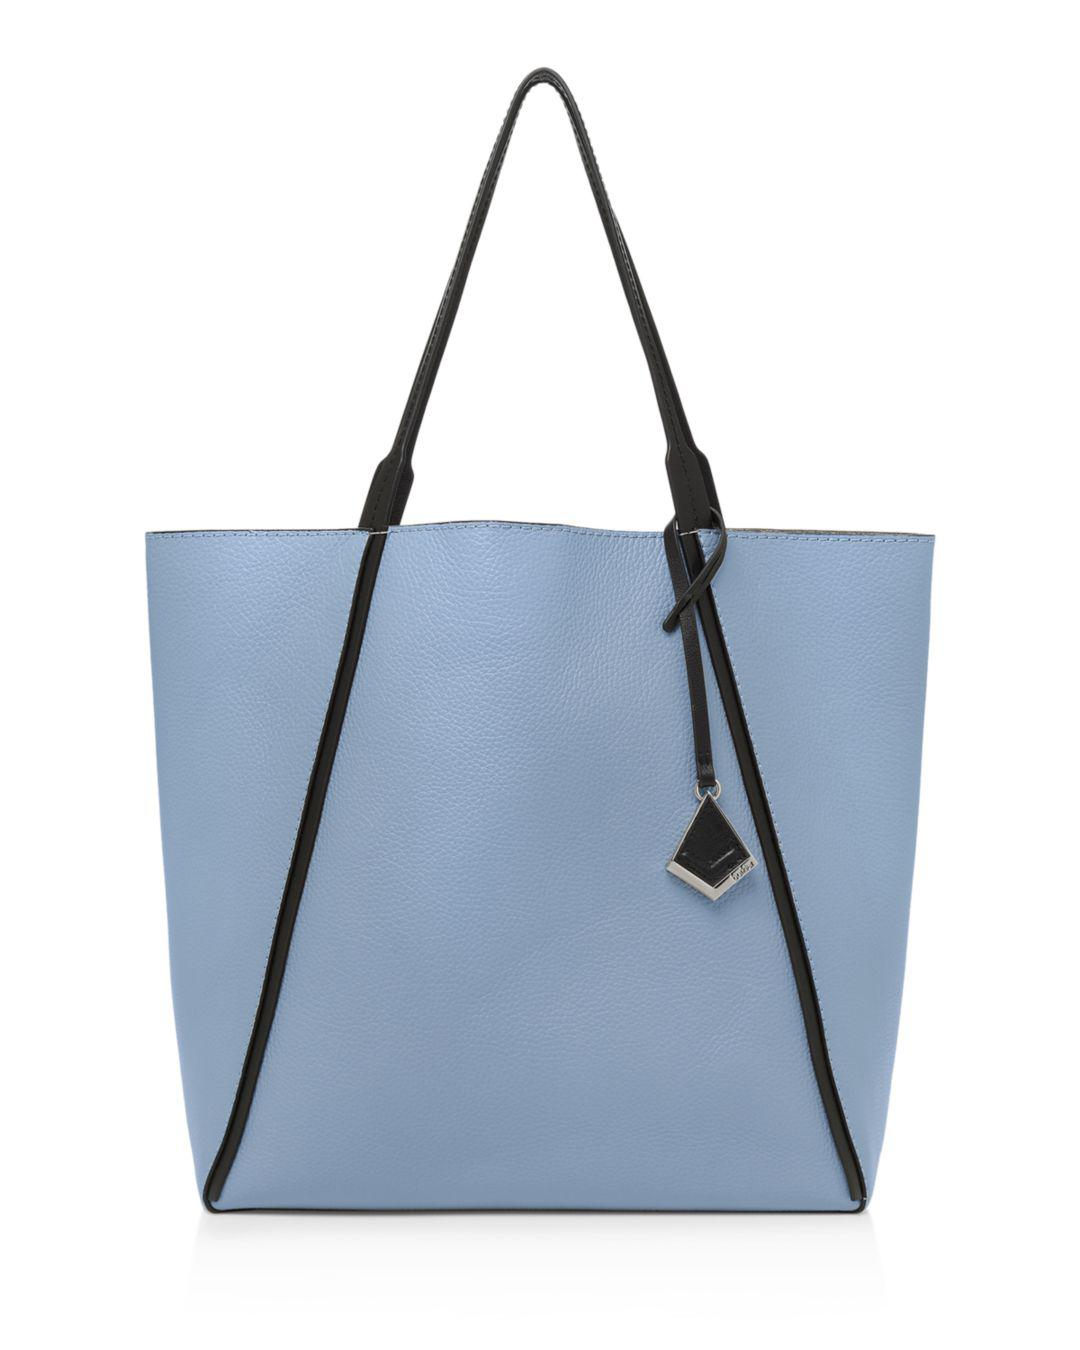 742eb649b Lyst - Botkier Trinity Leather Tote in Blue - Save 58%